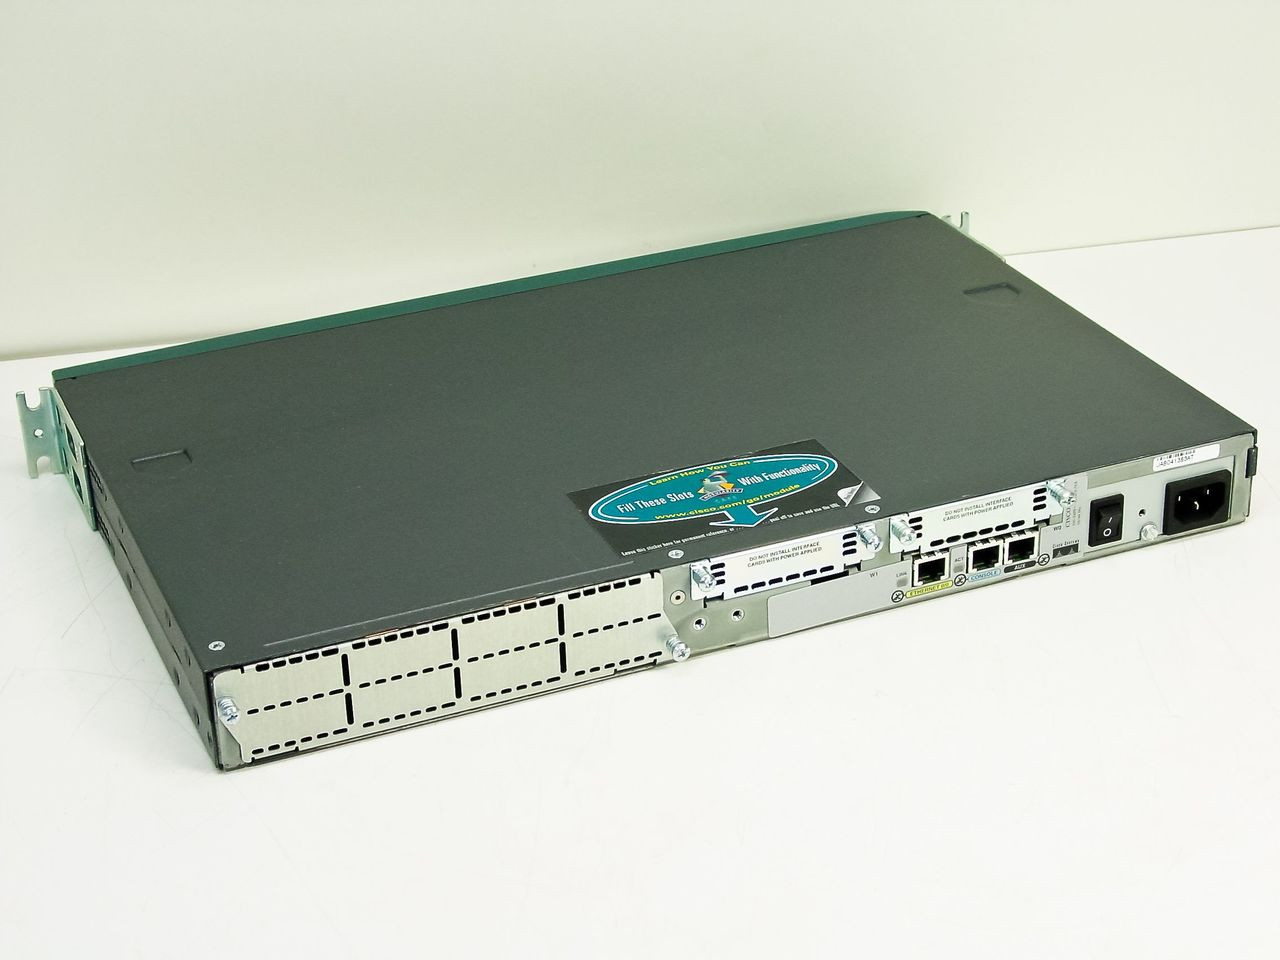 Cisco 2610 Network Router - 2600 Series | RecycledGoods.com